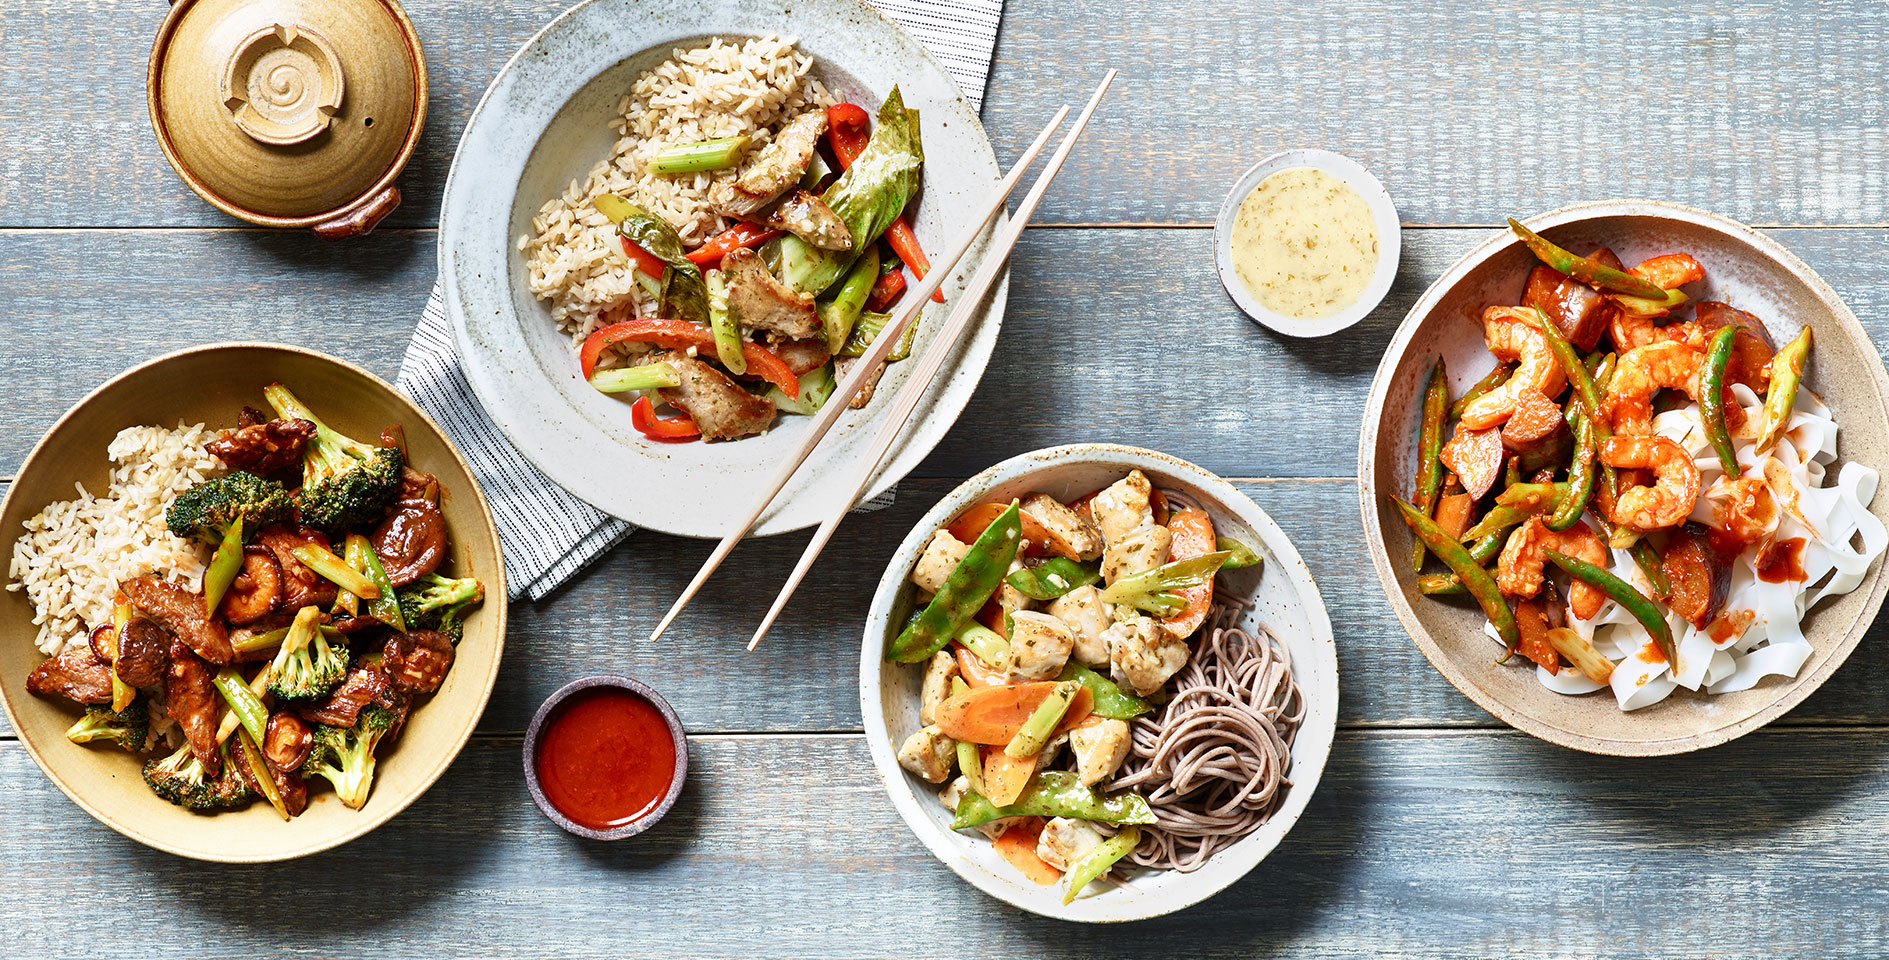 healthy stir-fry recipes